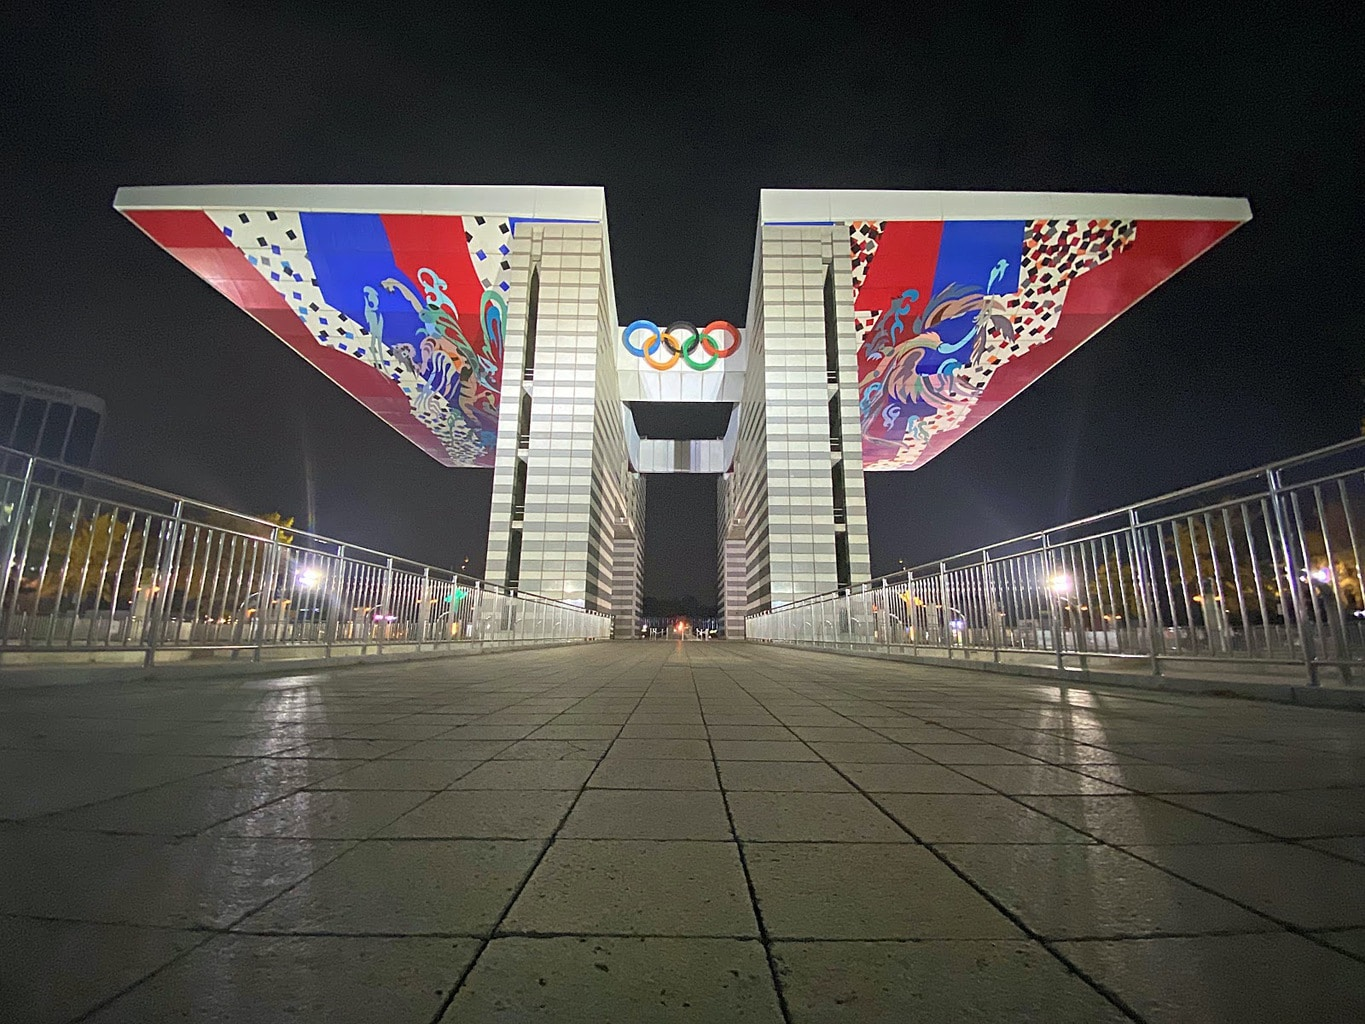 World Peace Gate at the Olympic Park Complex